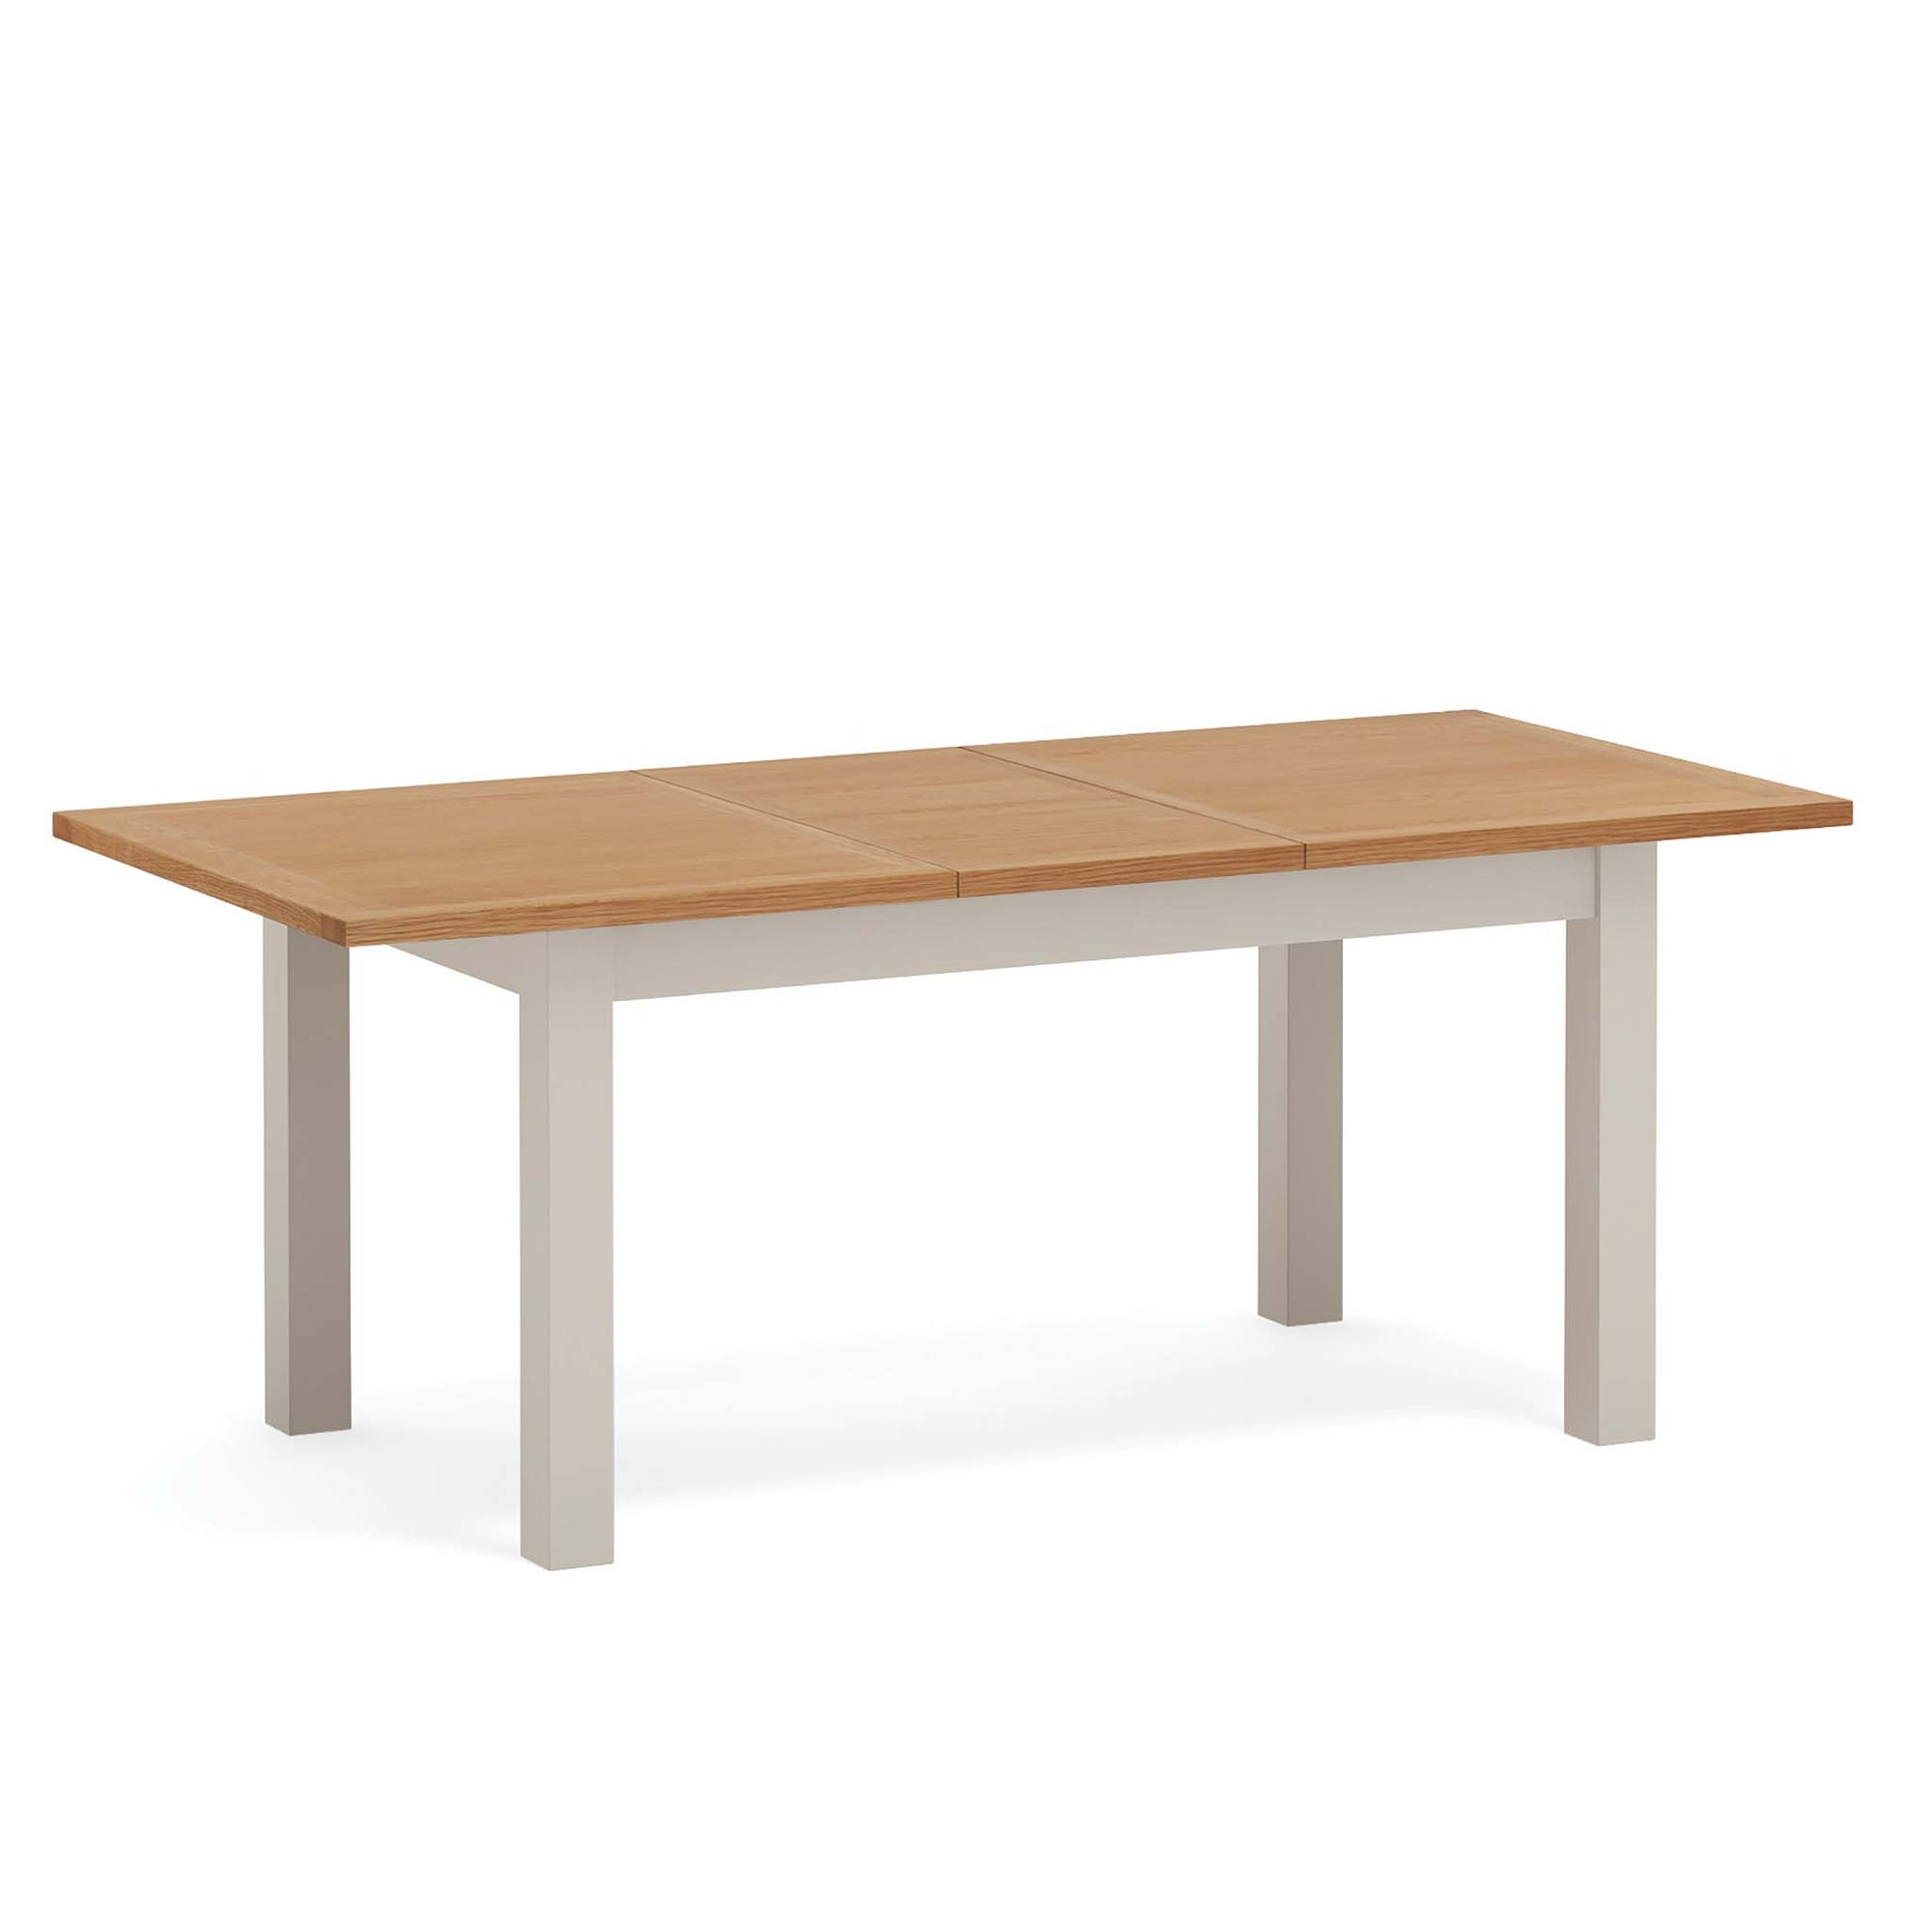 Dorset Stone Grey Small Extending Dining Table by Roseland Furniture